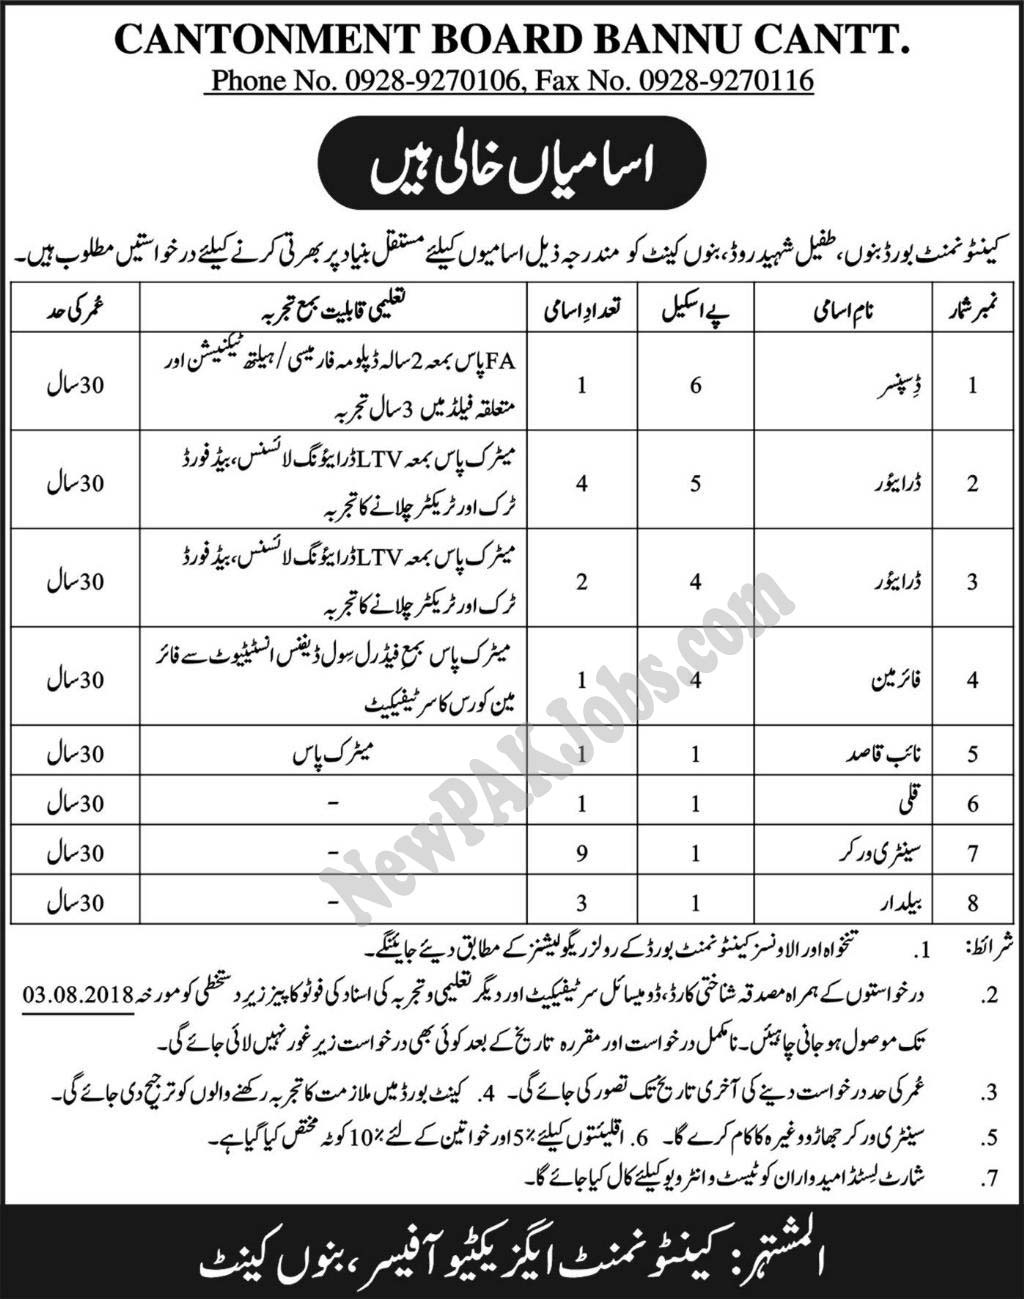 Cantonment Board Bannu Cantt, Jobs for Class four